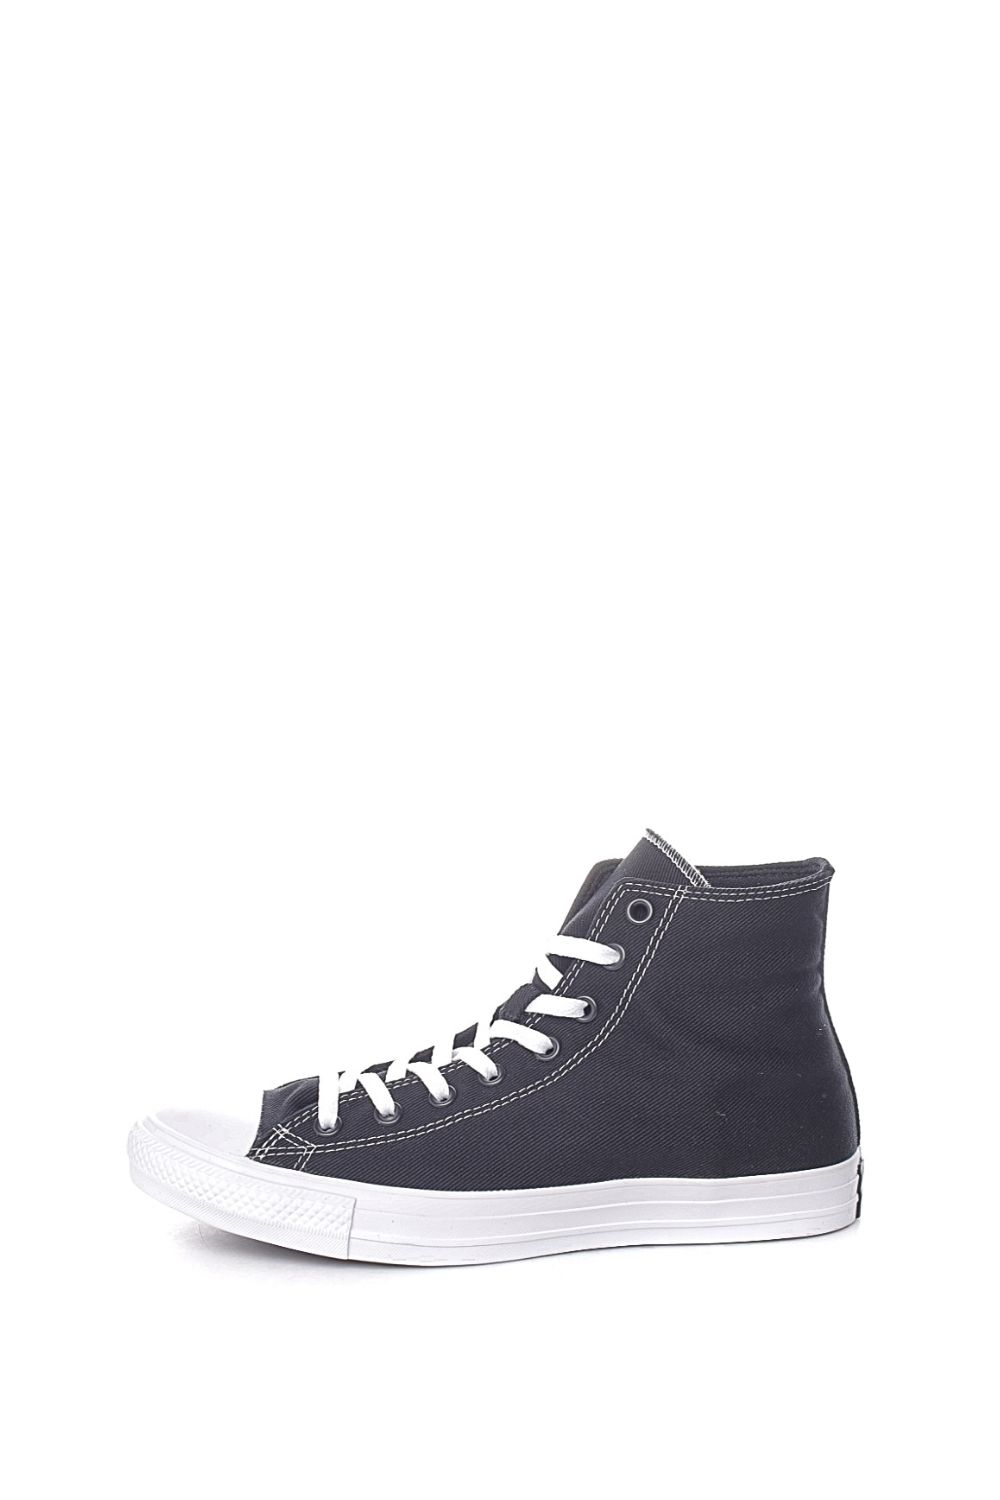 CONVERSE – Unisex ψηλά sneakers CONVERSE Chuck Taylor All Star μαύρα